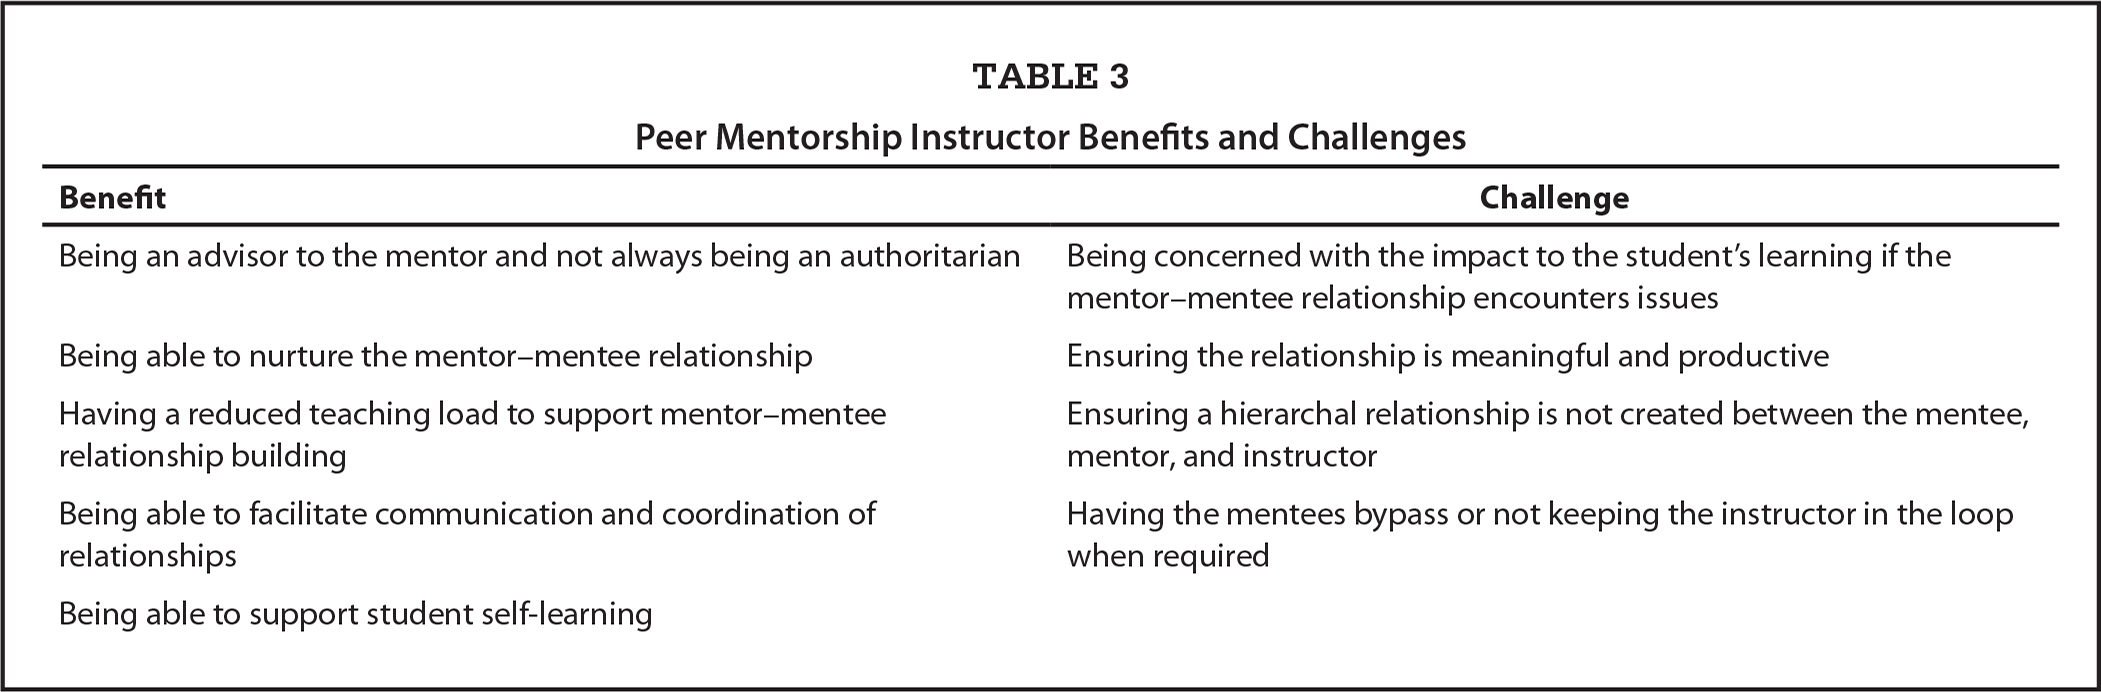 Peer Mentorship Instructor Benefits and Challenges